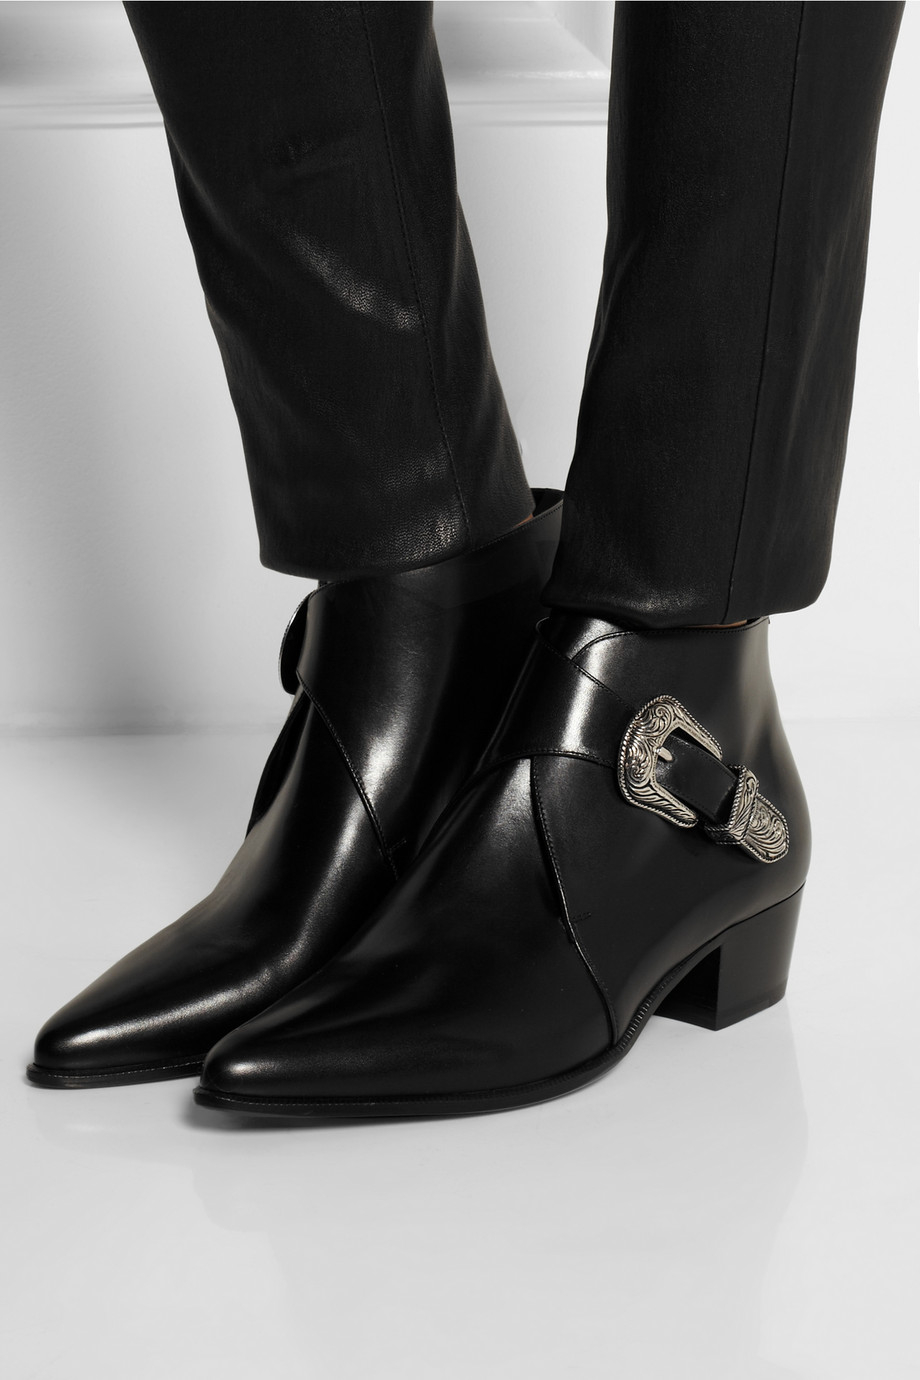 Lyst - Saint Laurent Duckies Leather Ankle Boots in Black c6040937aa52